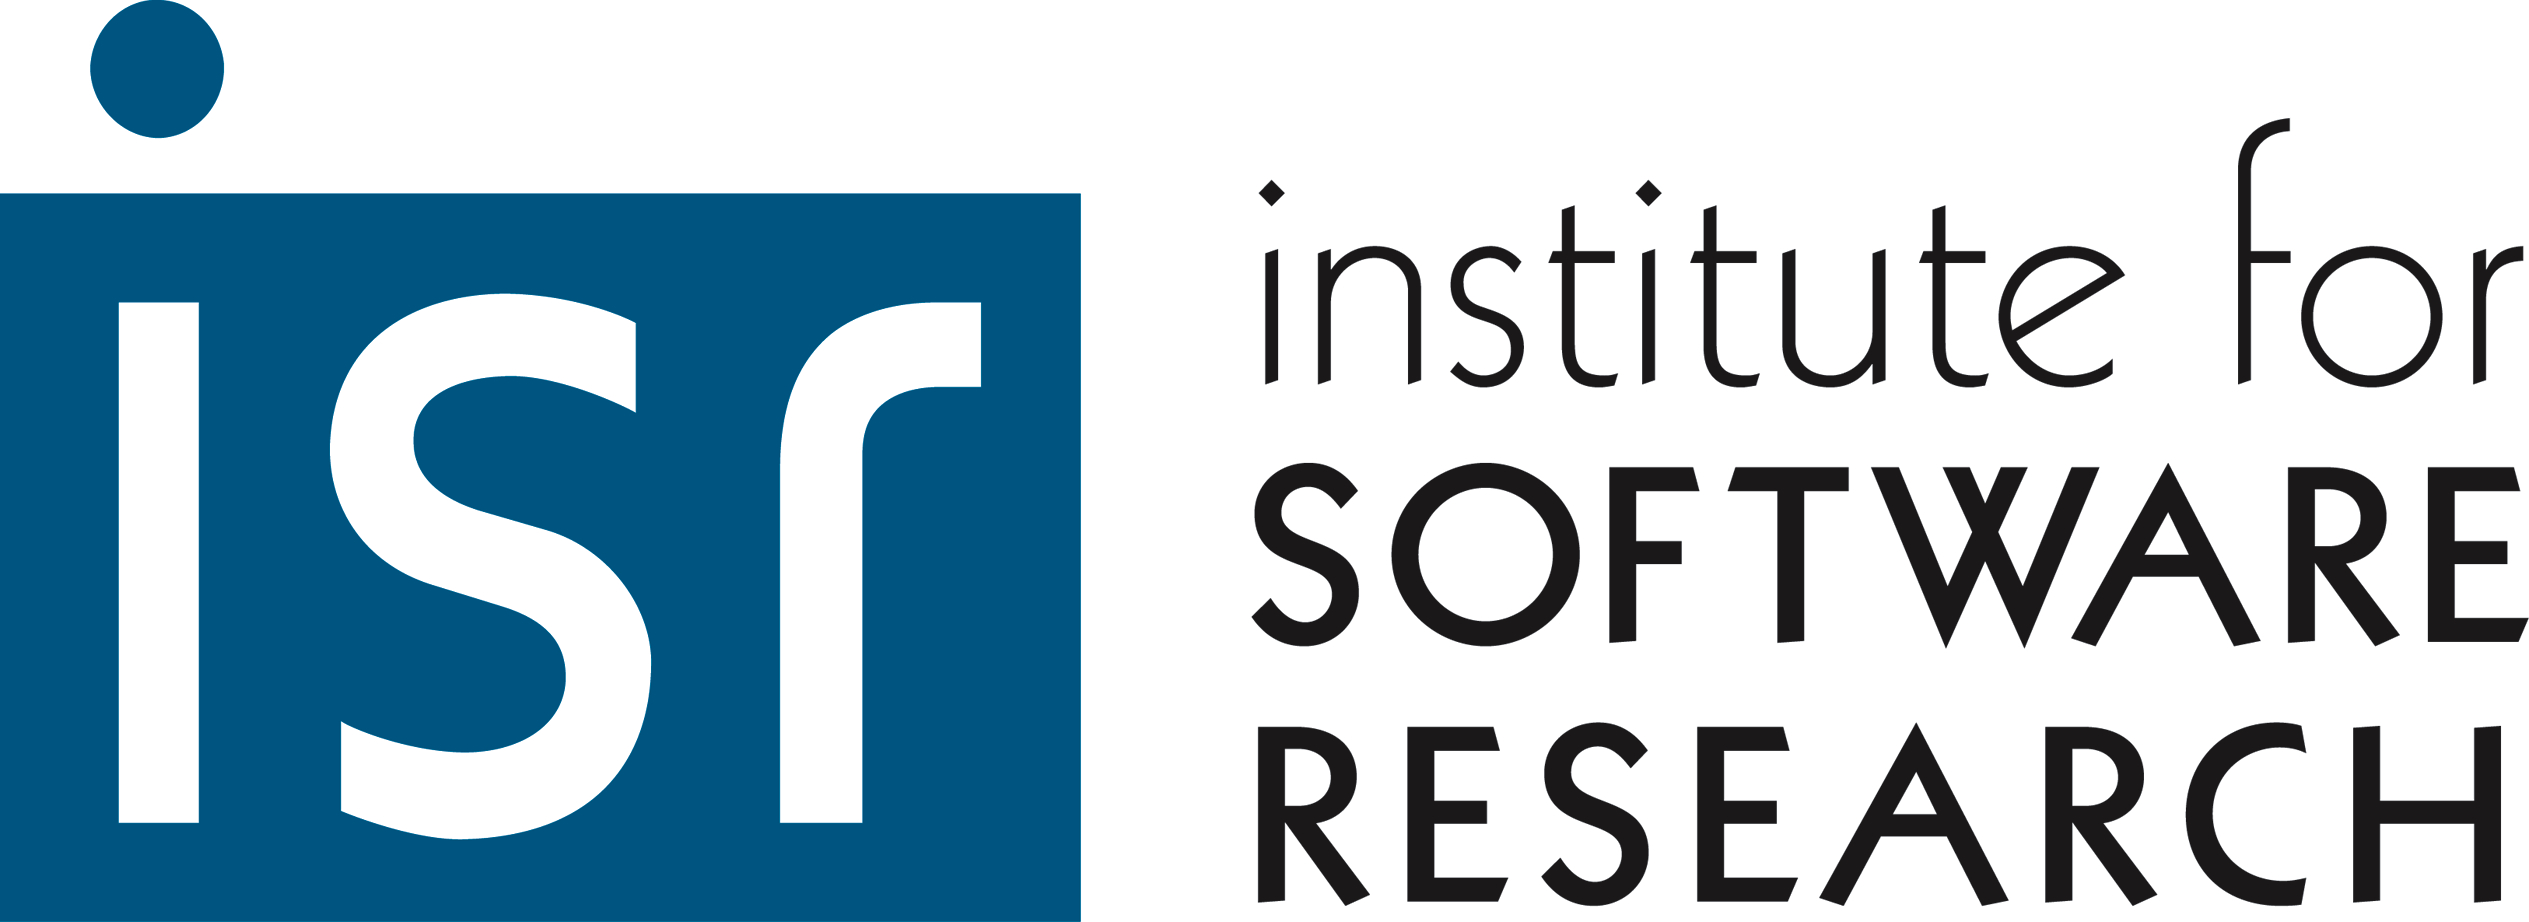 CMU Institute for Software Research